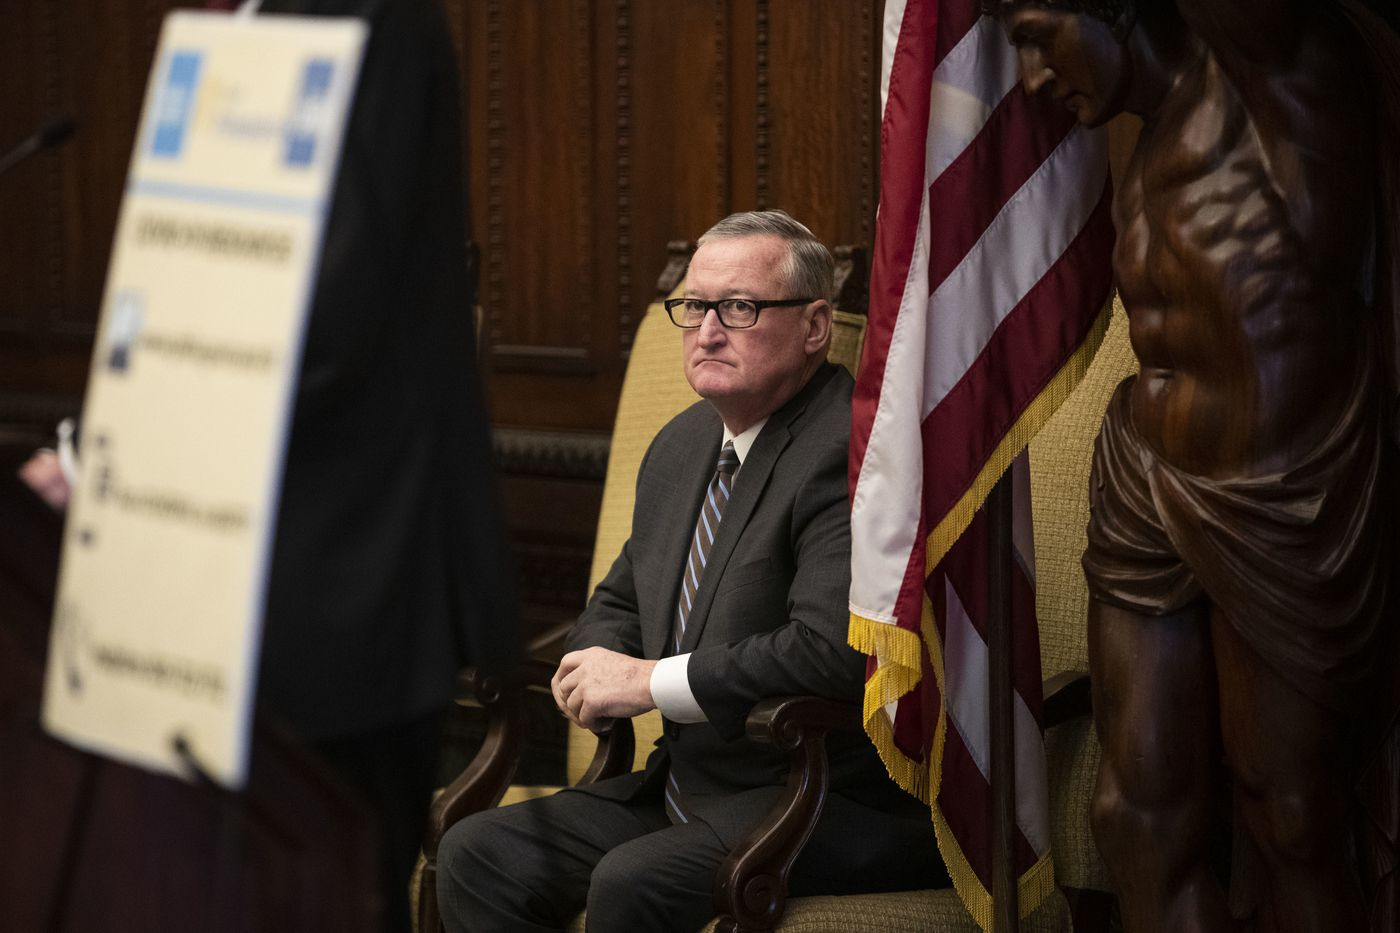 Mayor of Philadelphia Jim Kenney listens during a news conference about the coronavirus at City Hall on Wednesday. Confirmed cases of the coronavirus are escalating across the country, including presumed positives in both Pennsylvania and New Jersey.